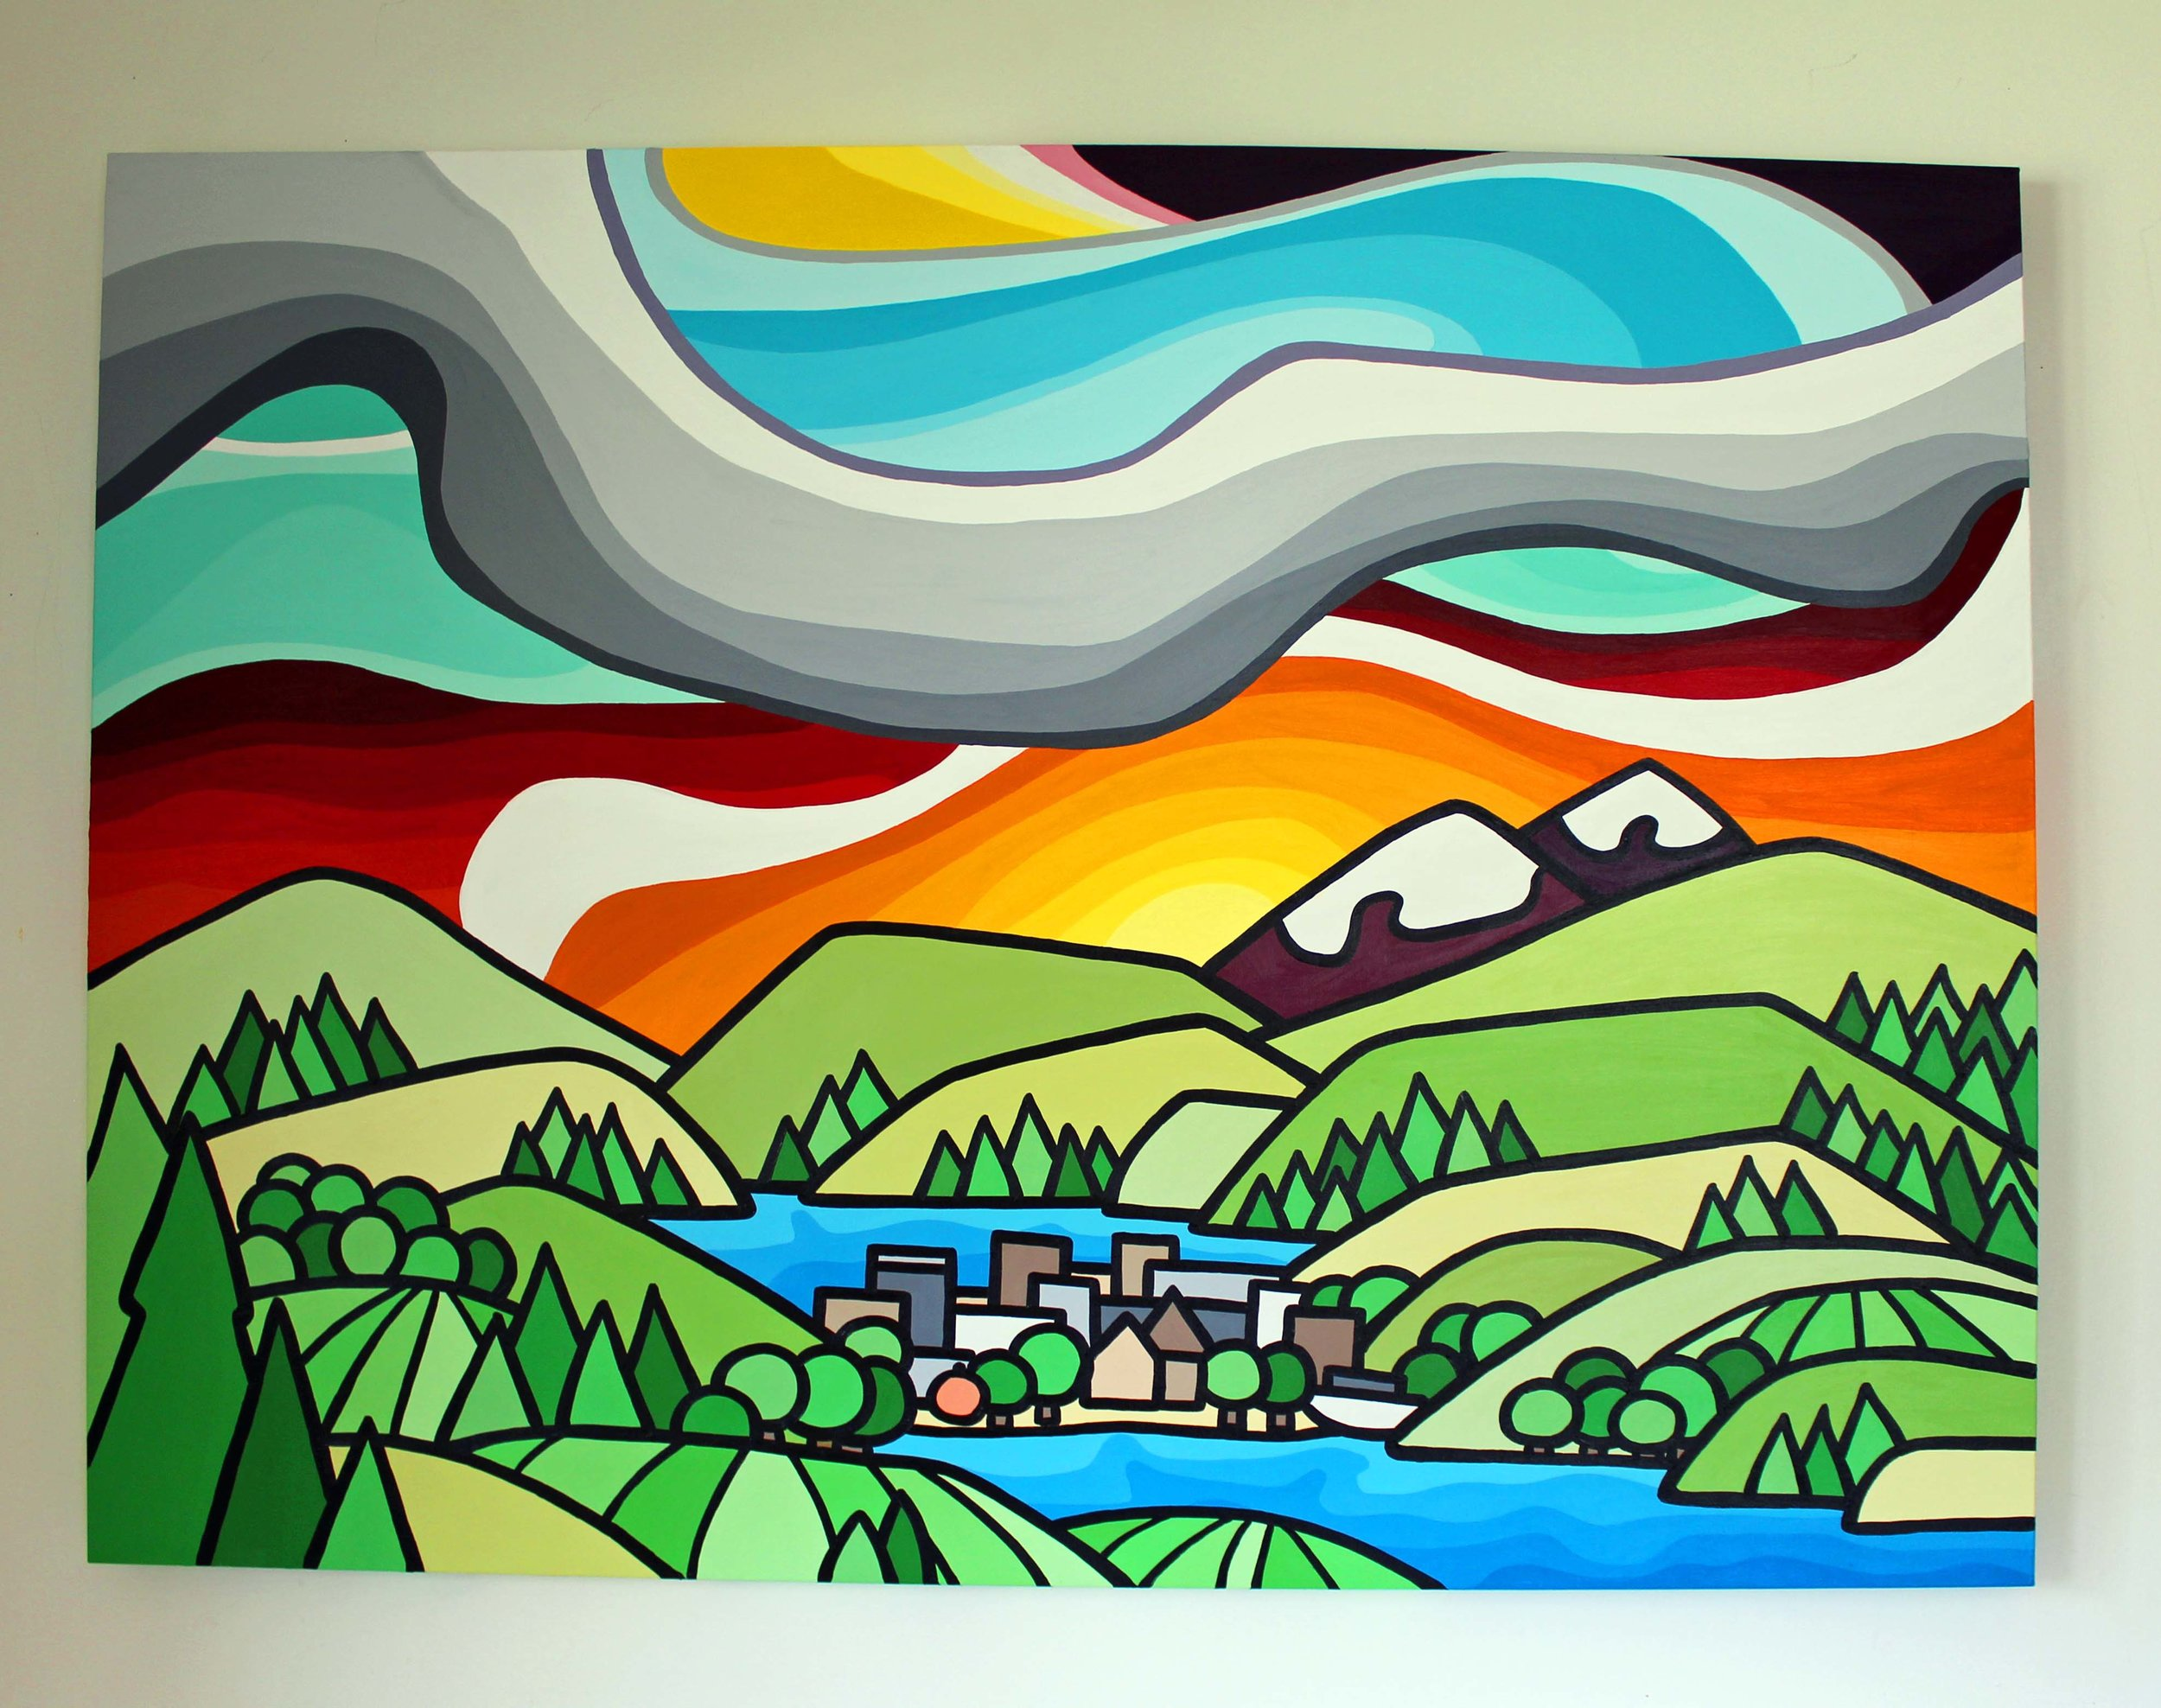 "Summer in Penticton - Size: 36"" x 48"" acrylic on canvasPrice: SOLD"